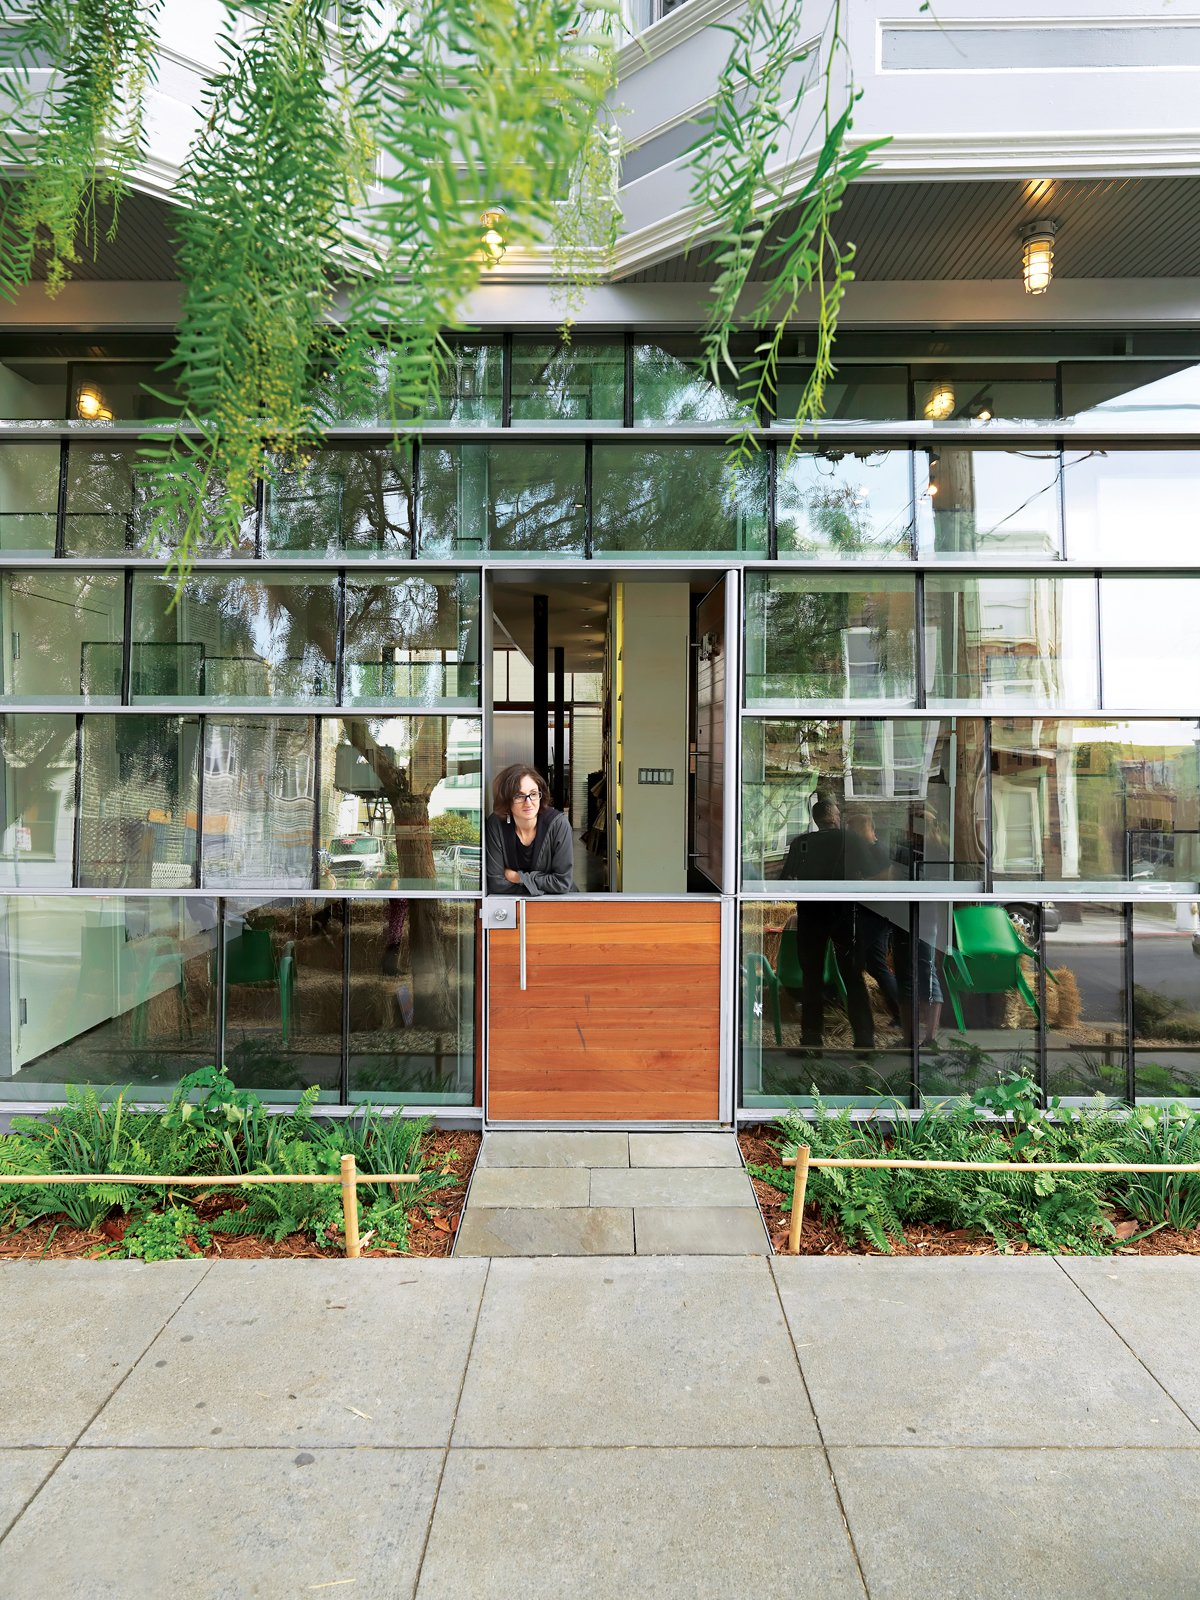 Doors, Exterior, Wood, and Swing Door Type Dunbar and Astrakhan's low-cost, high-impact tour de force is a storefront facade constructed from salvaged double-insulated window glass panels arranged in a shingle pattern.  Best Photos from Just Redo It